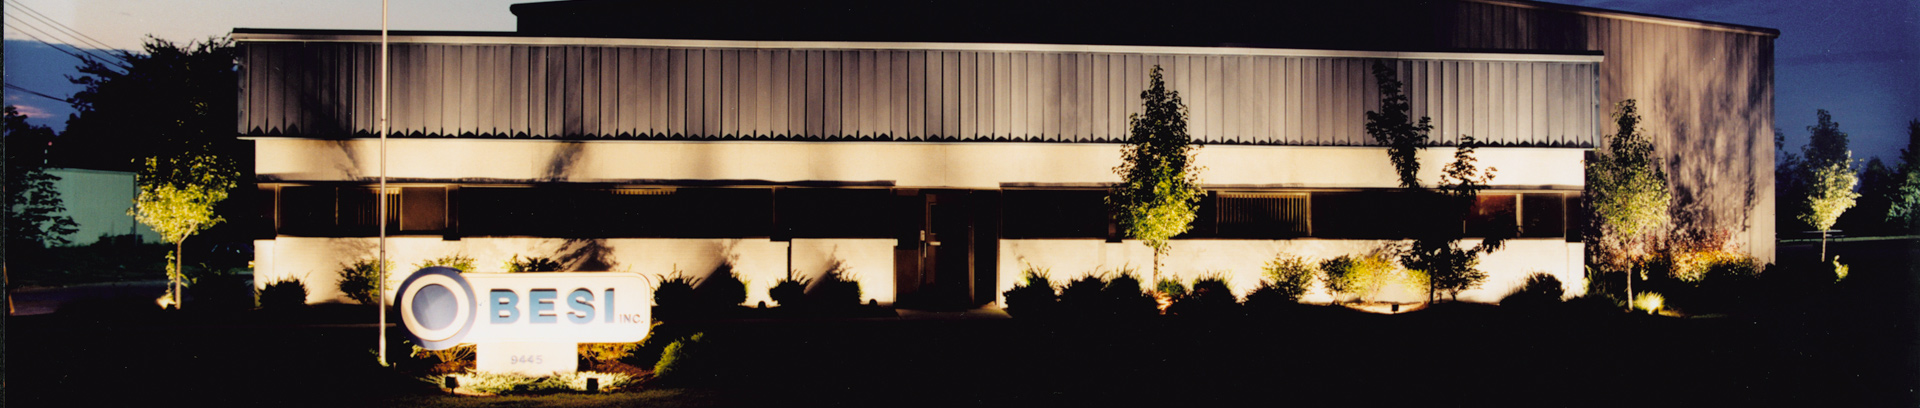 Commercial Landscape Lighting in Cincinnati, Ohio